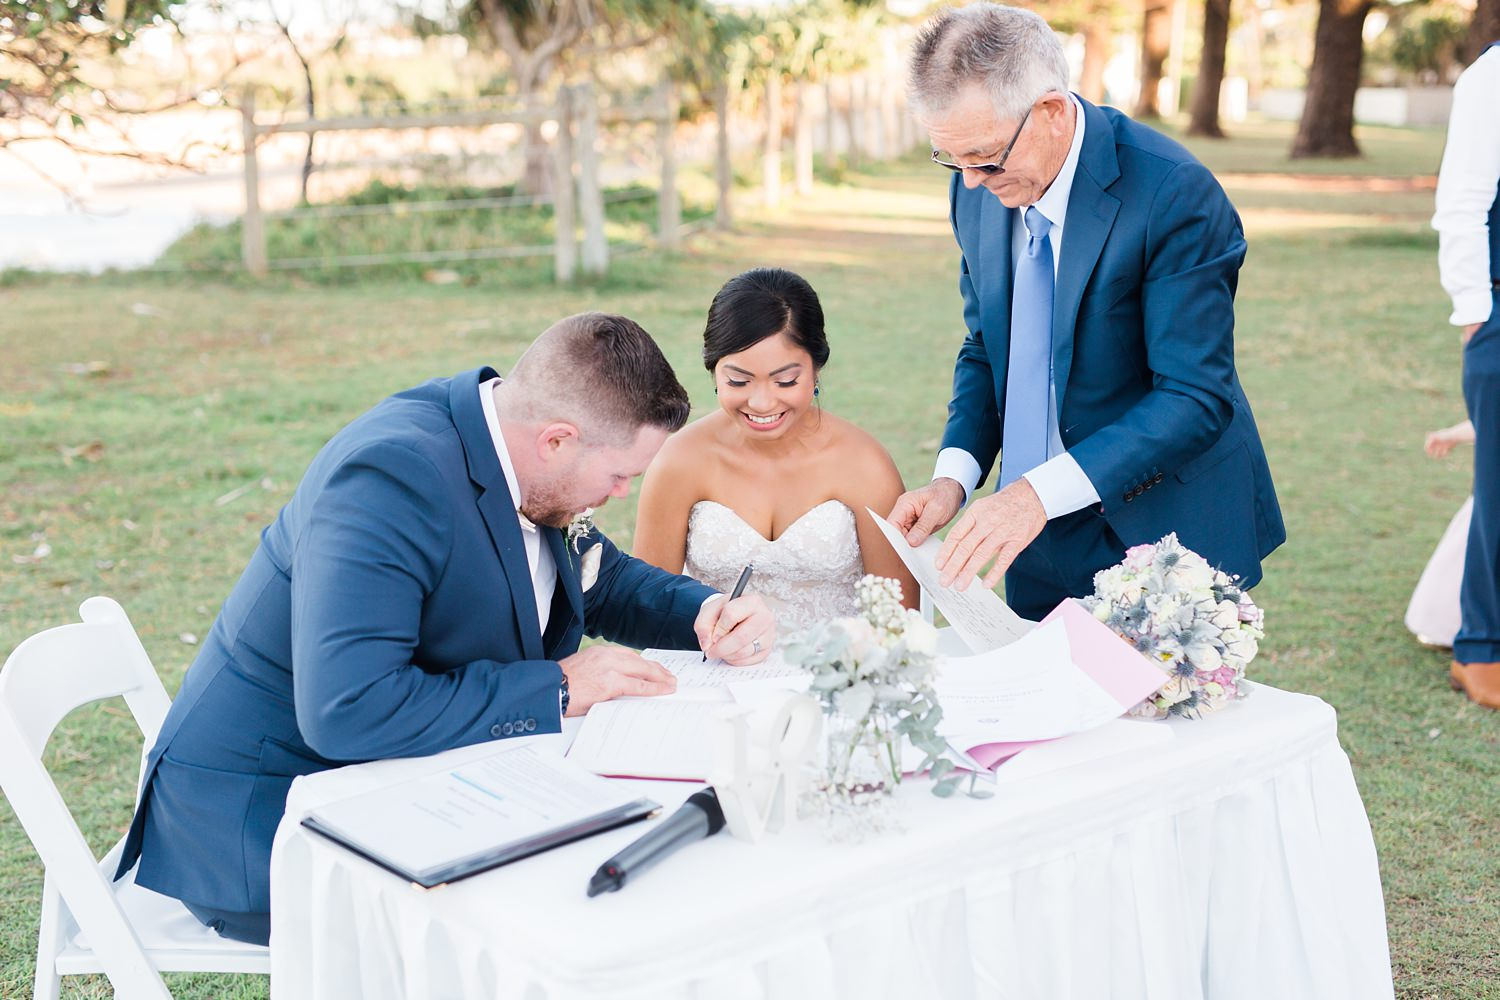 Dicky Beach Sunshine Coast Wedding by mario colli photography